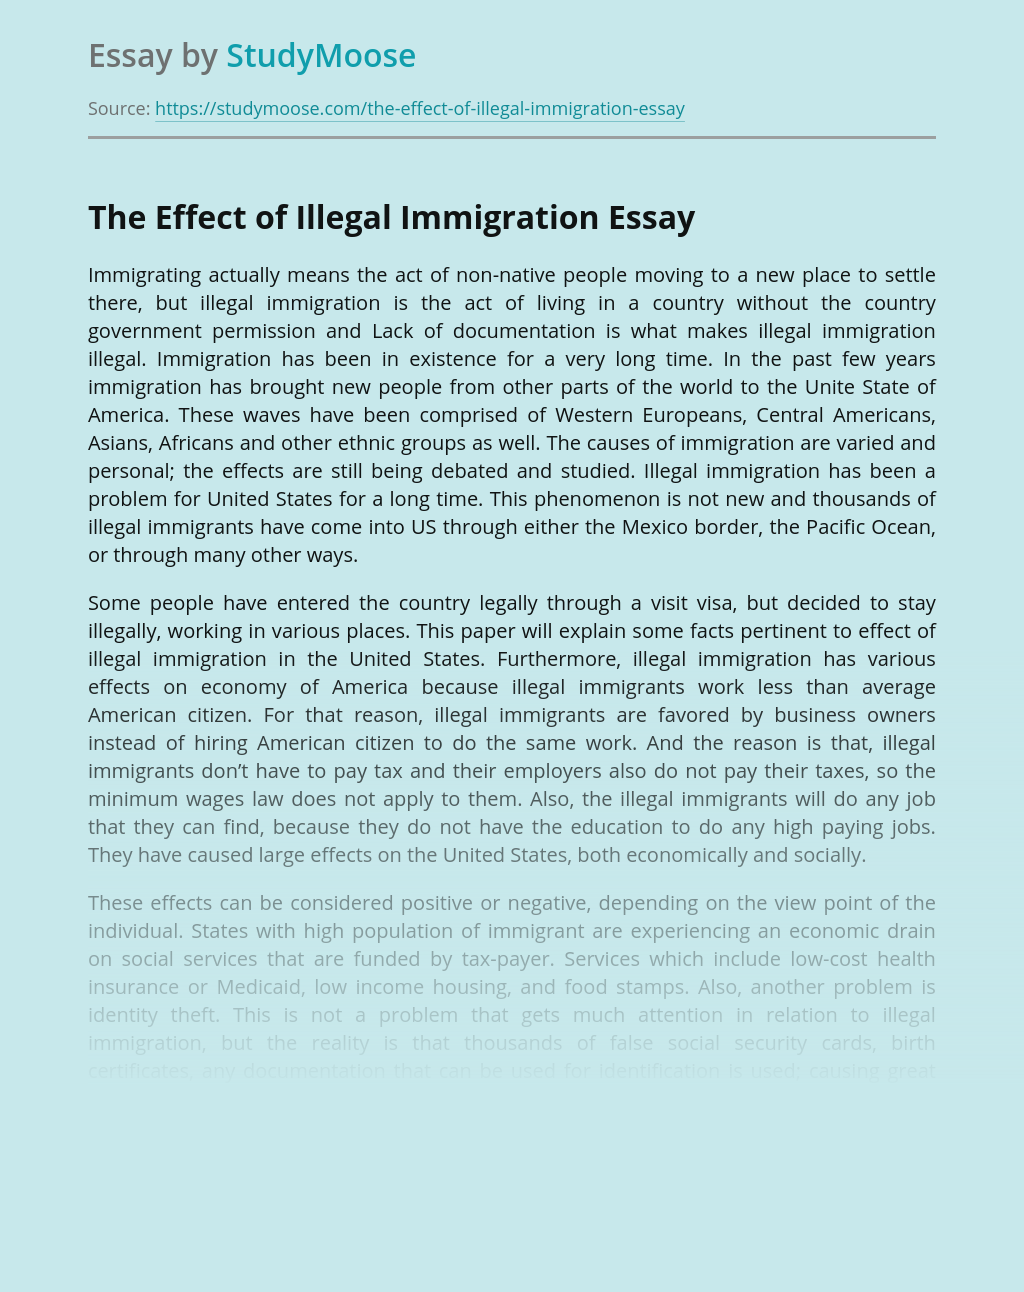 The Effect of Illegal Immigration